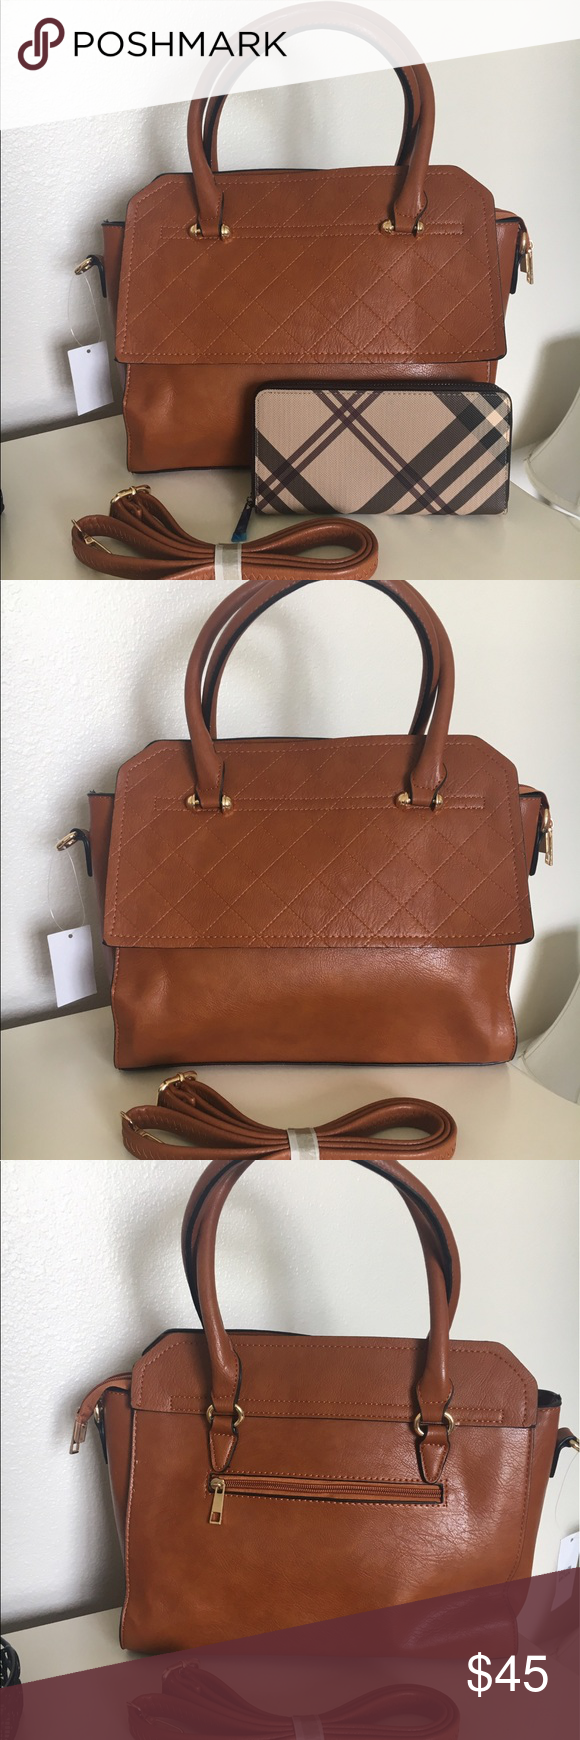 Brown purse with wallet bundle!!! ❤ New fashion purse with detachable strap that can be used as crossbody comes with wallet. Not exact pattern but looks well together. Purse can be sold separately. Bags Crossbody Bags